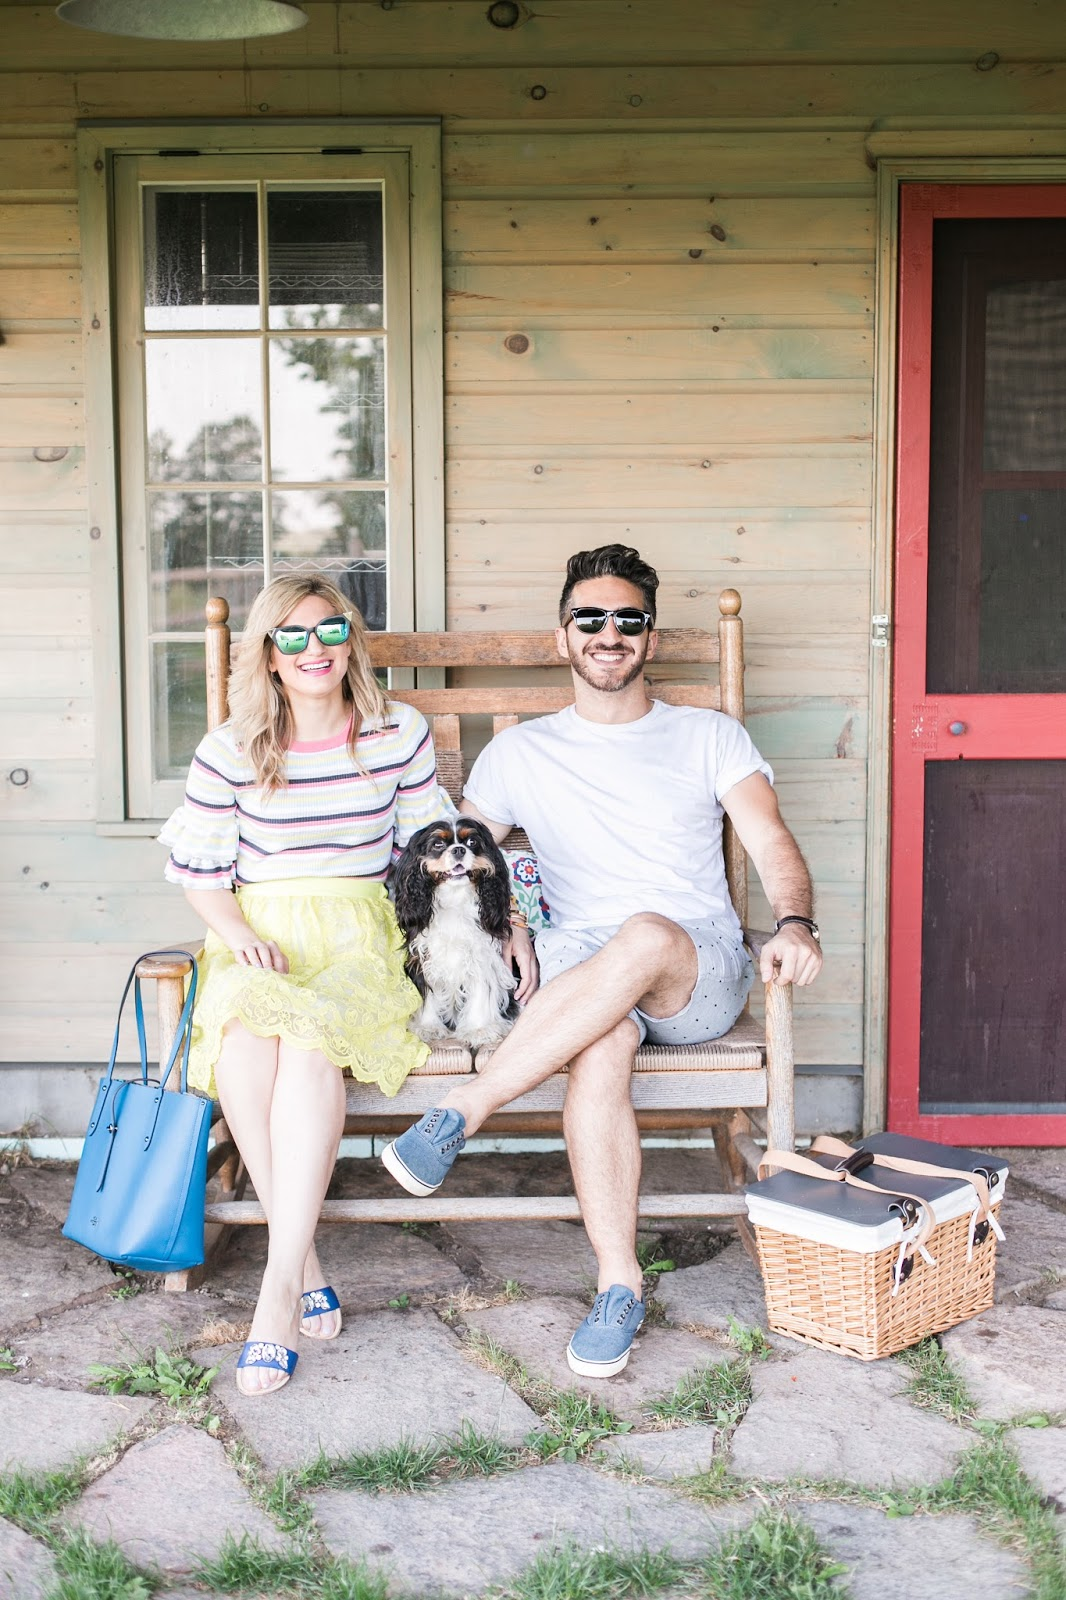 Bijuleni - Couples casual #ootd for a picnic